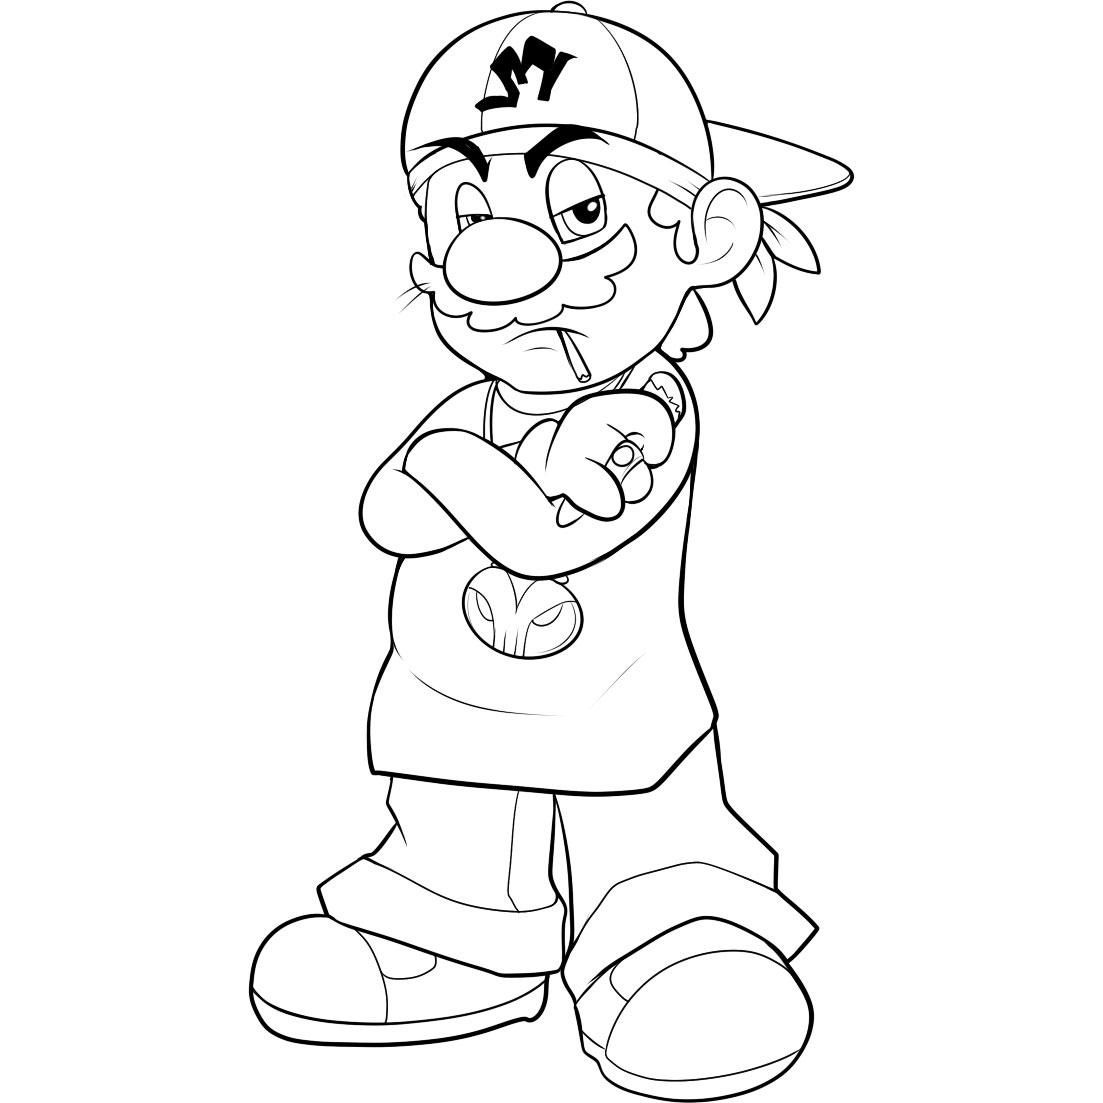 Mario Brother Coloring Pages